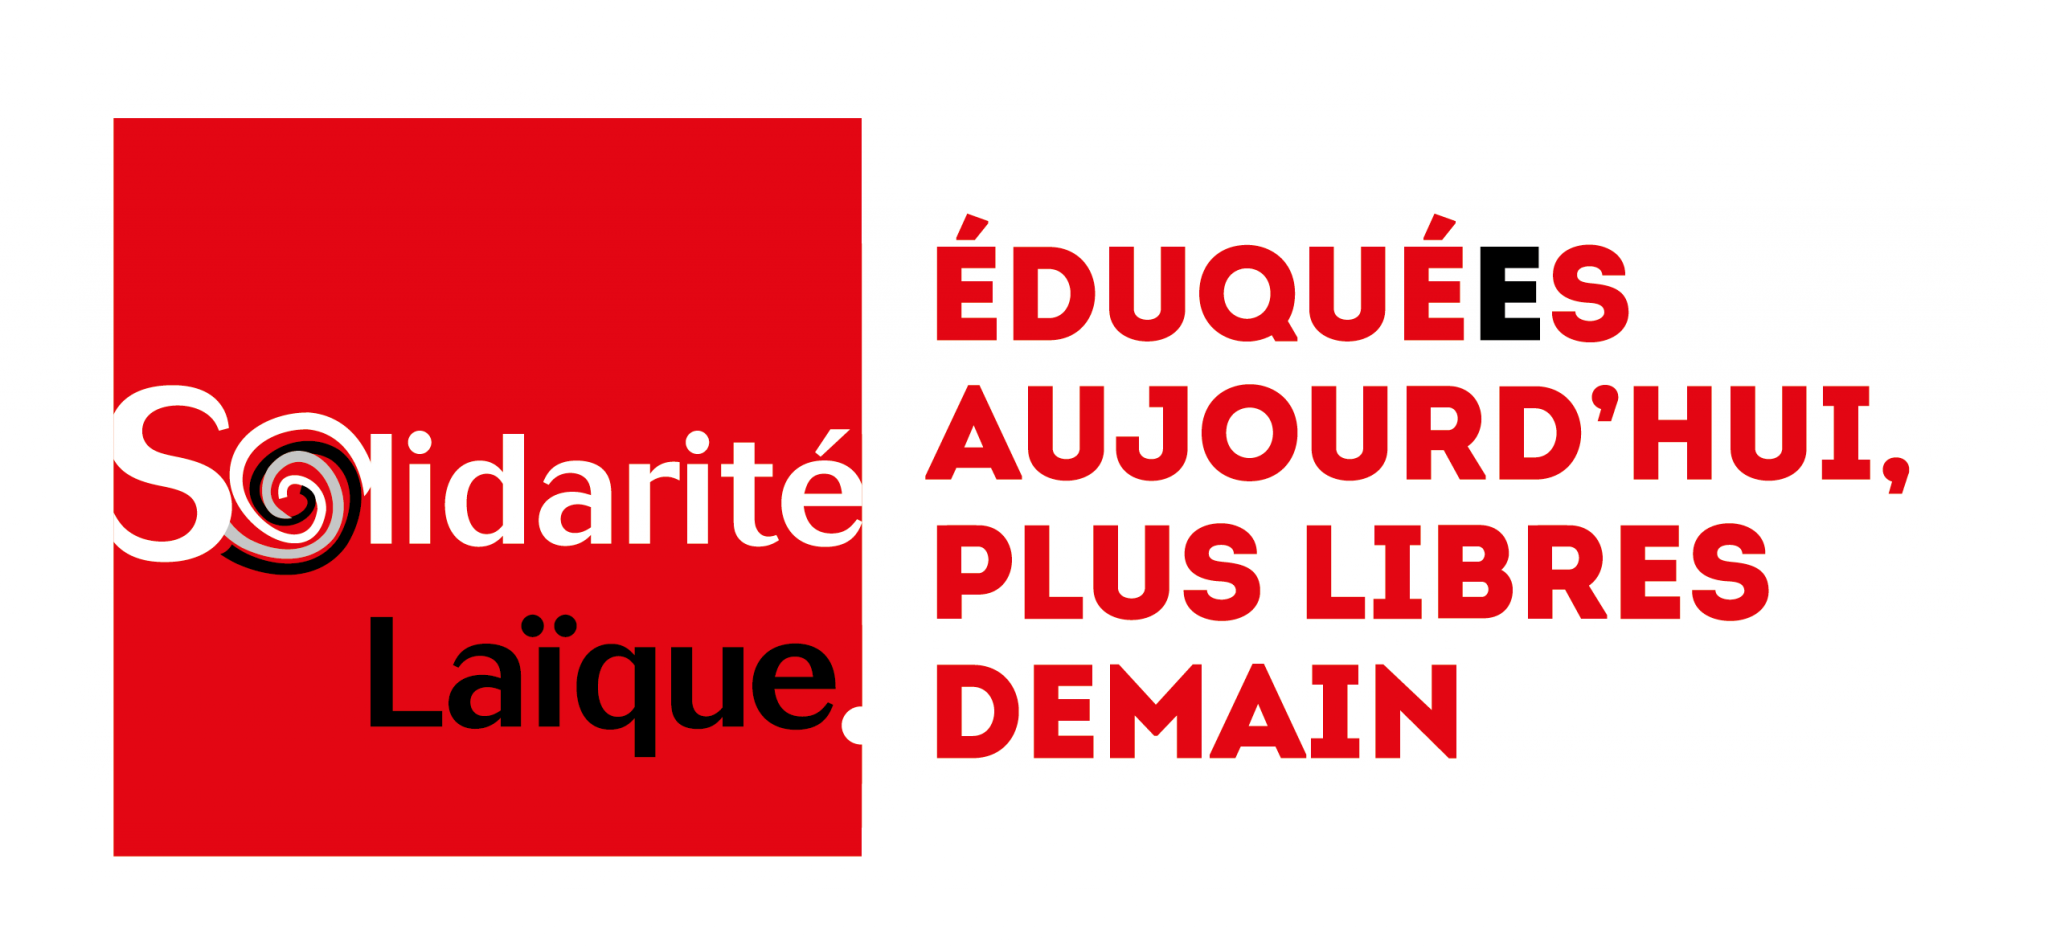 Solidarite-Laique